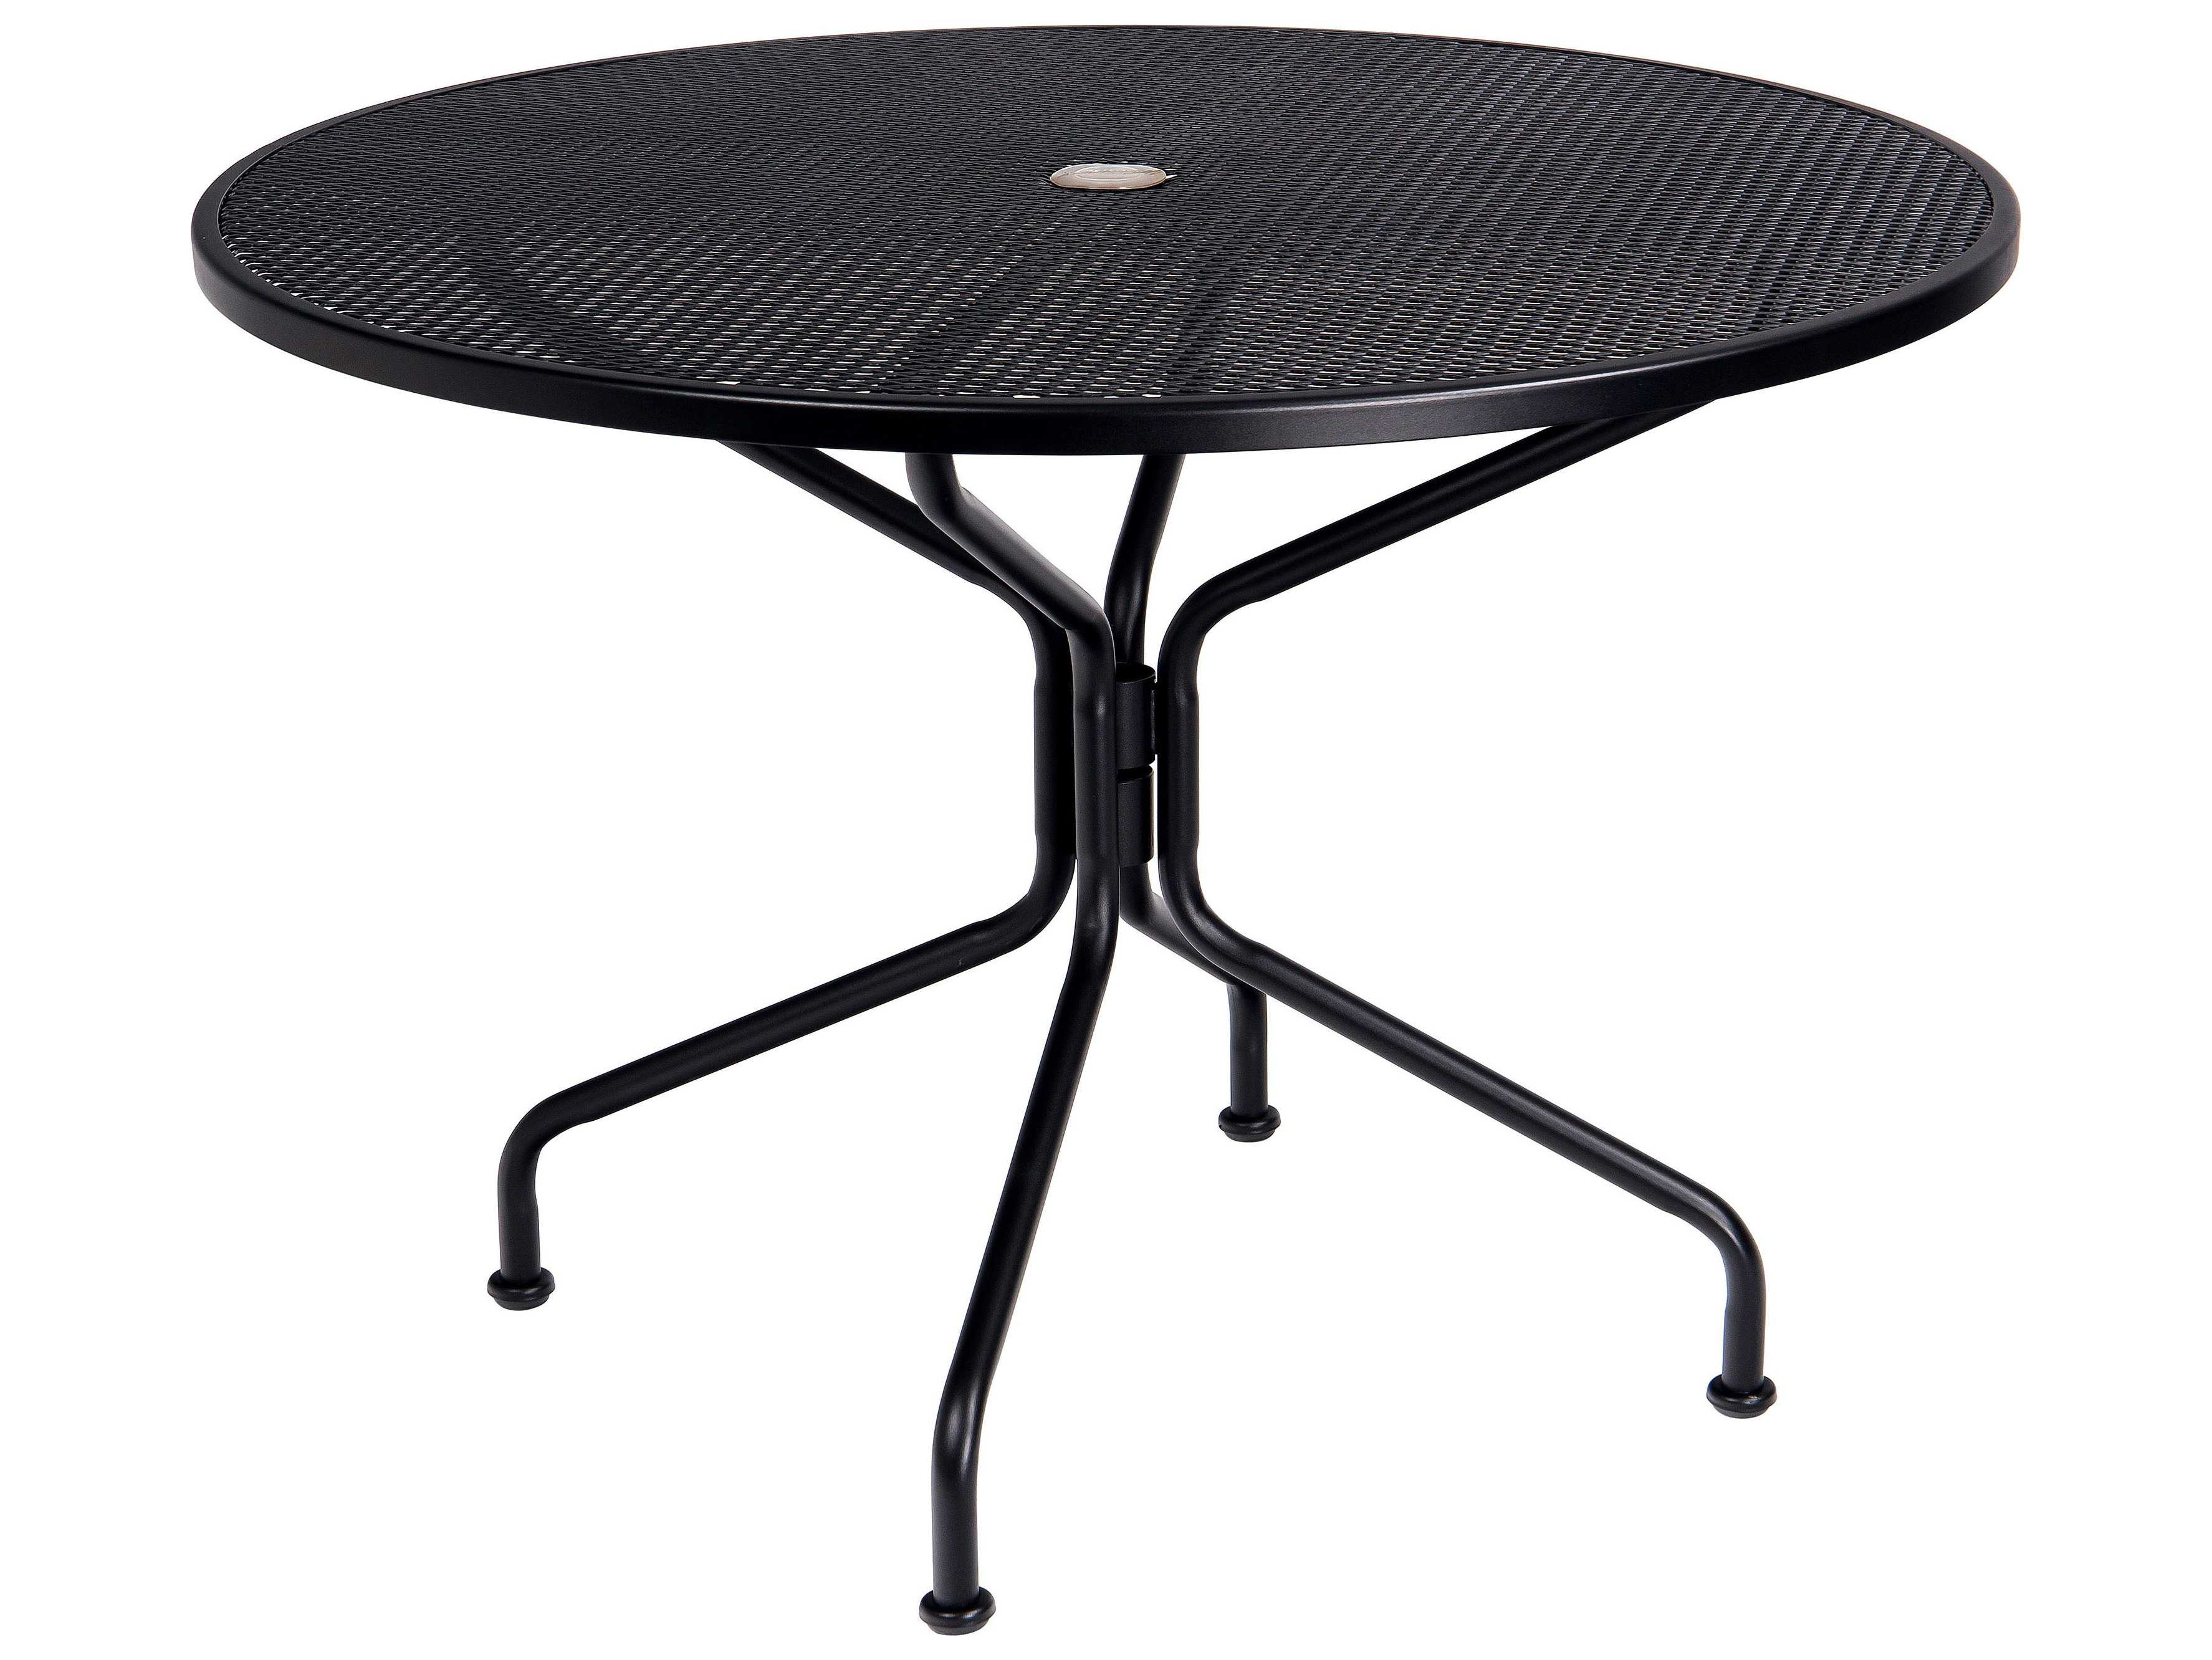 Woodard wrought iron 42 round umbrella table 4 spoke 190229 for Metal patio table